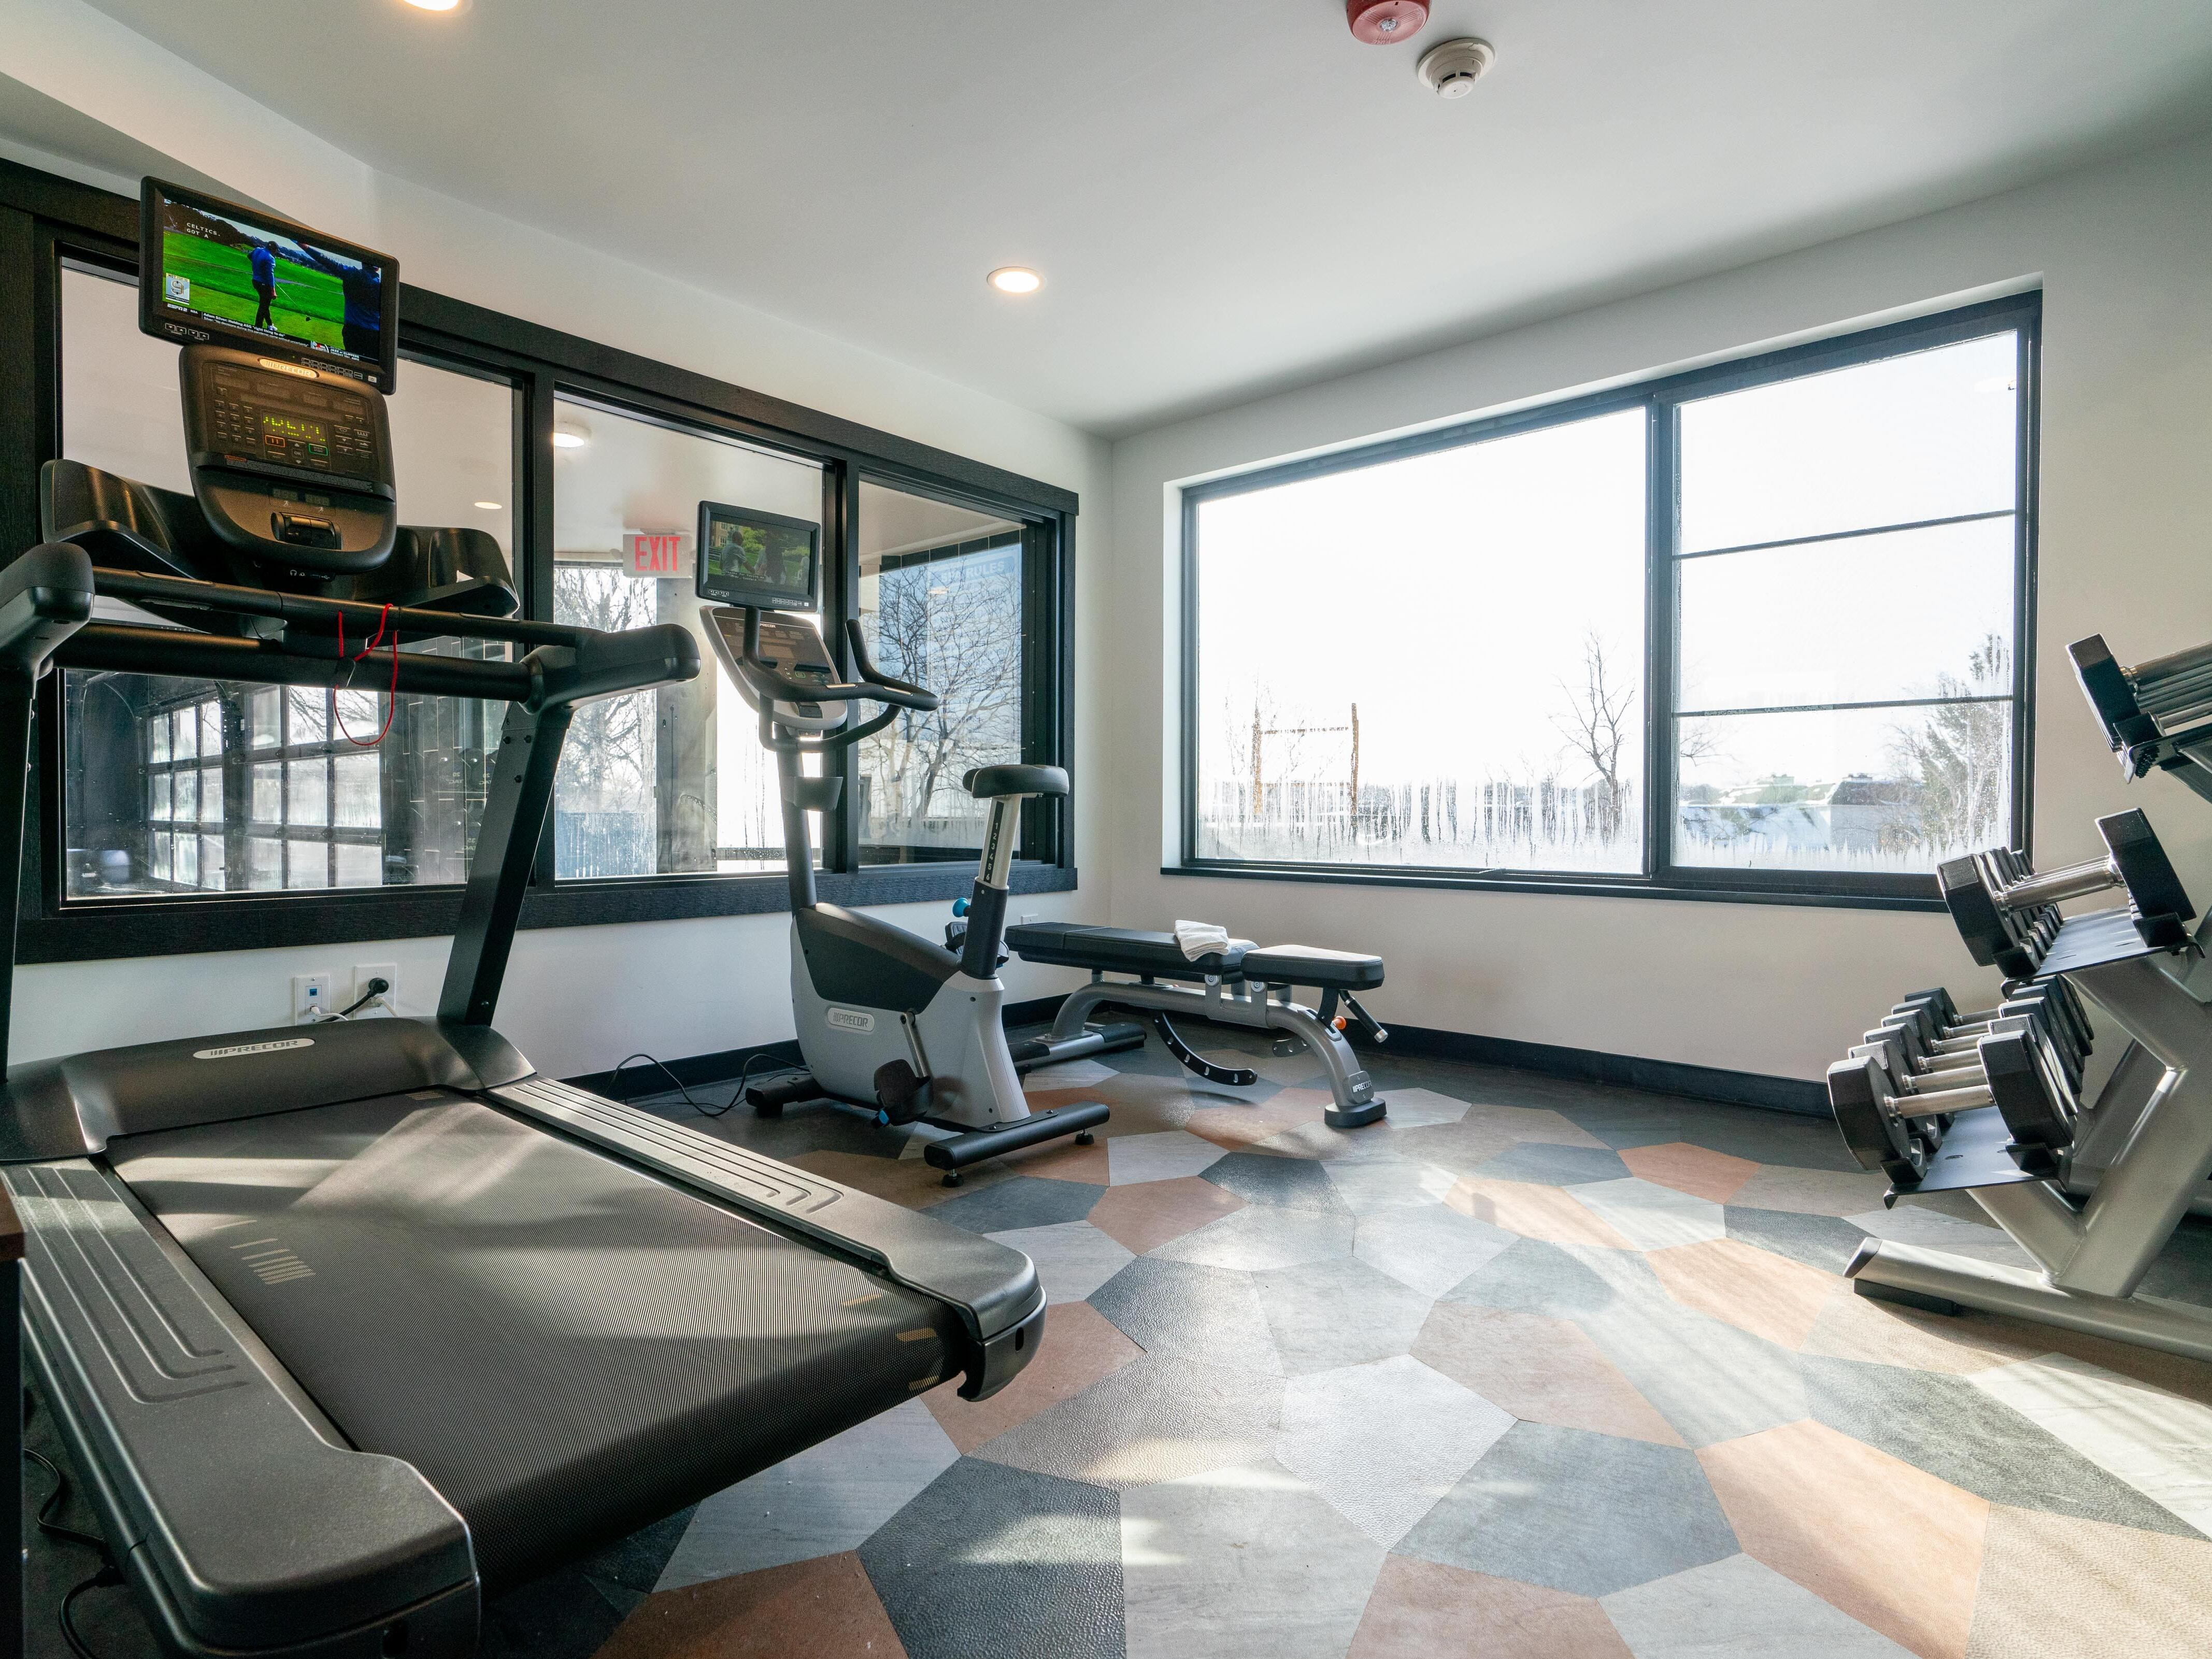 Fitness center at Hotel Earl